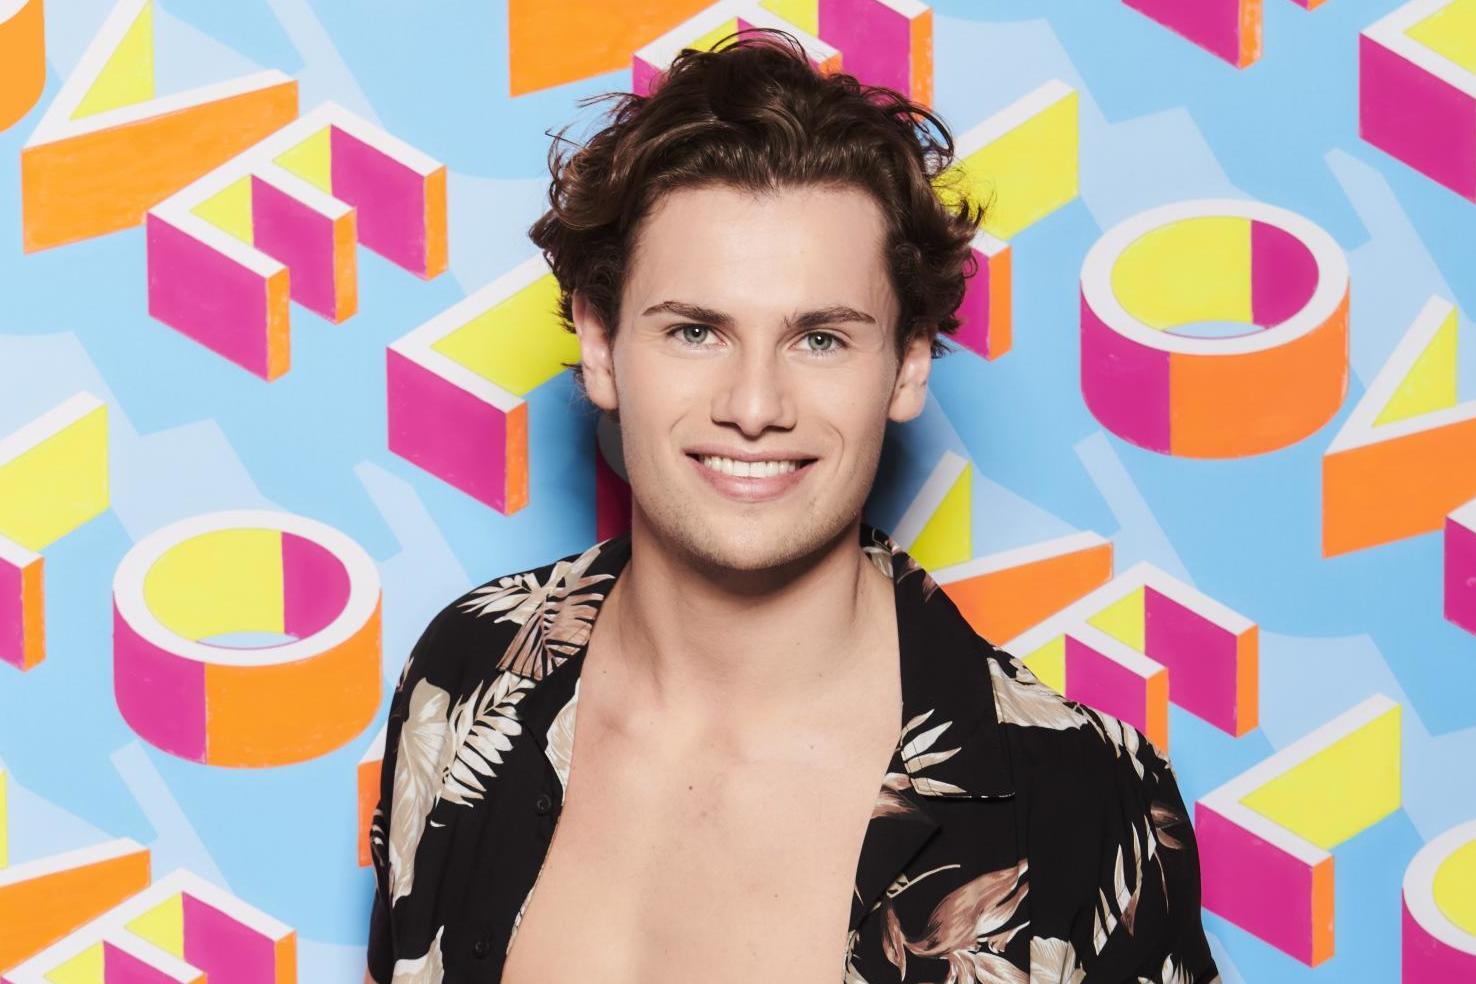 Love Island 2019: What time does it start on TV and how can